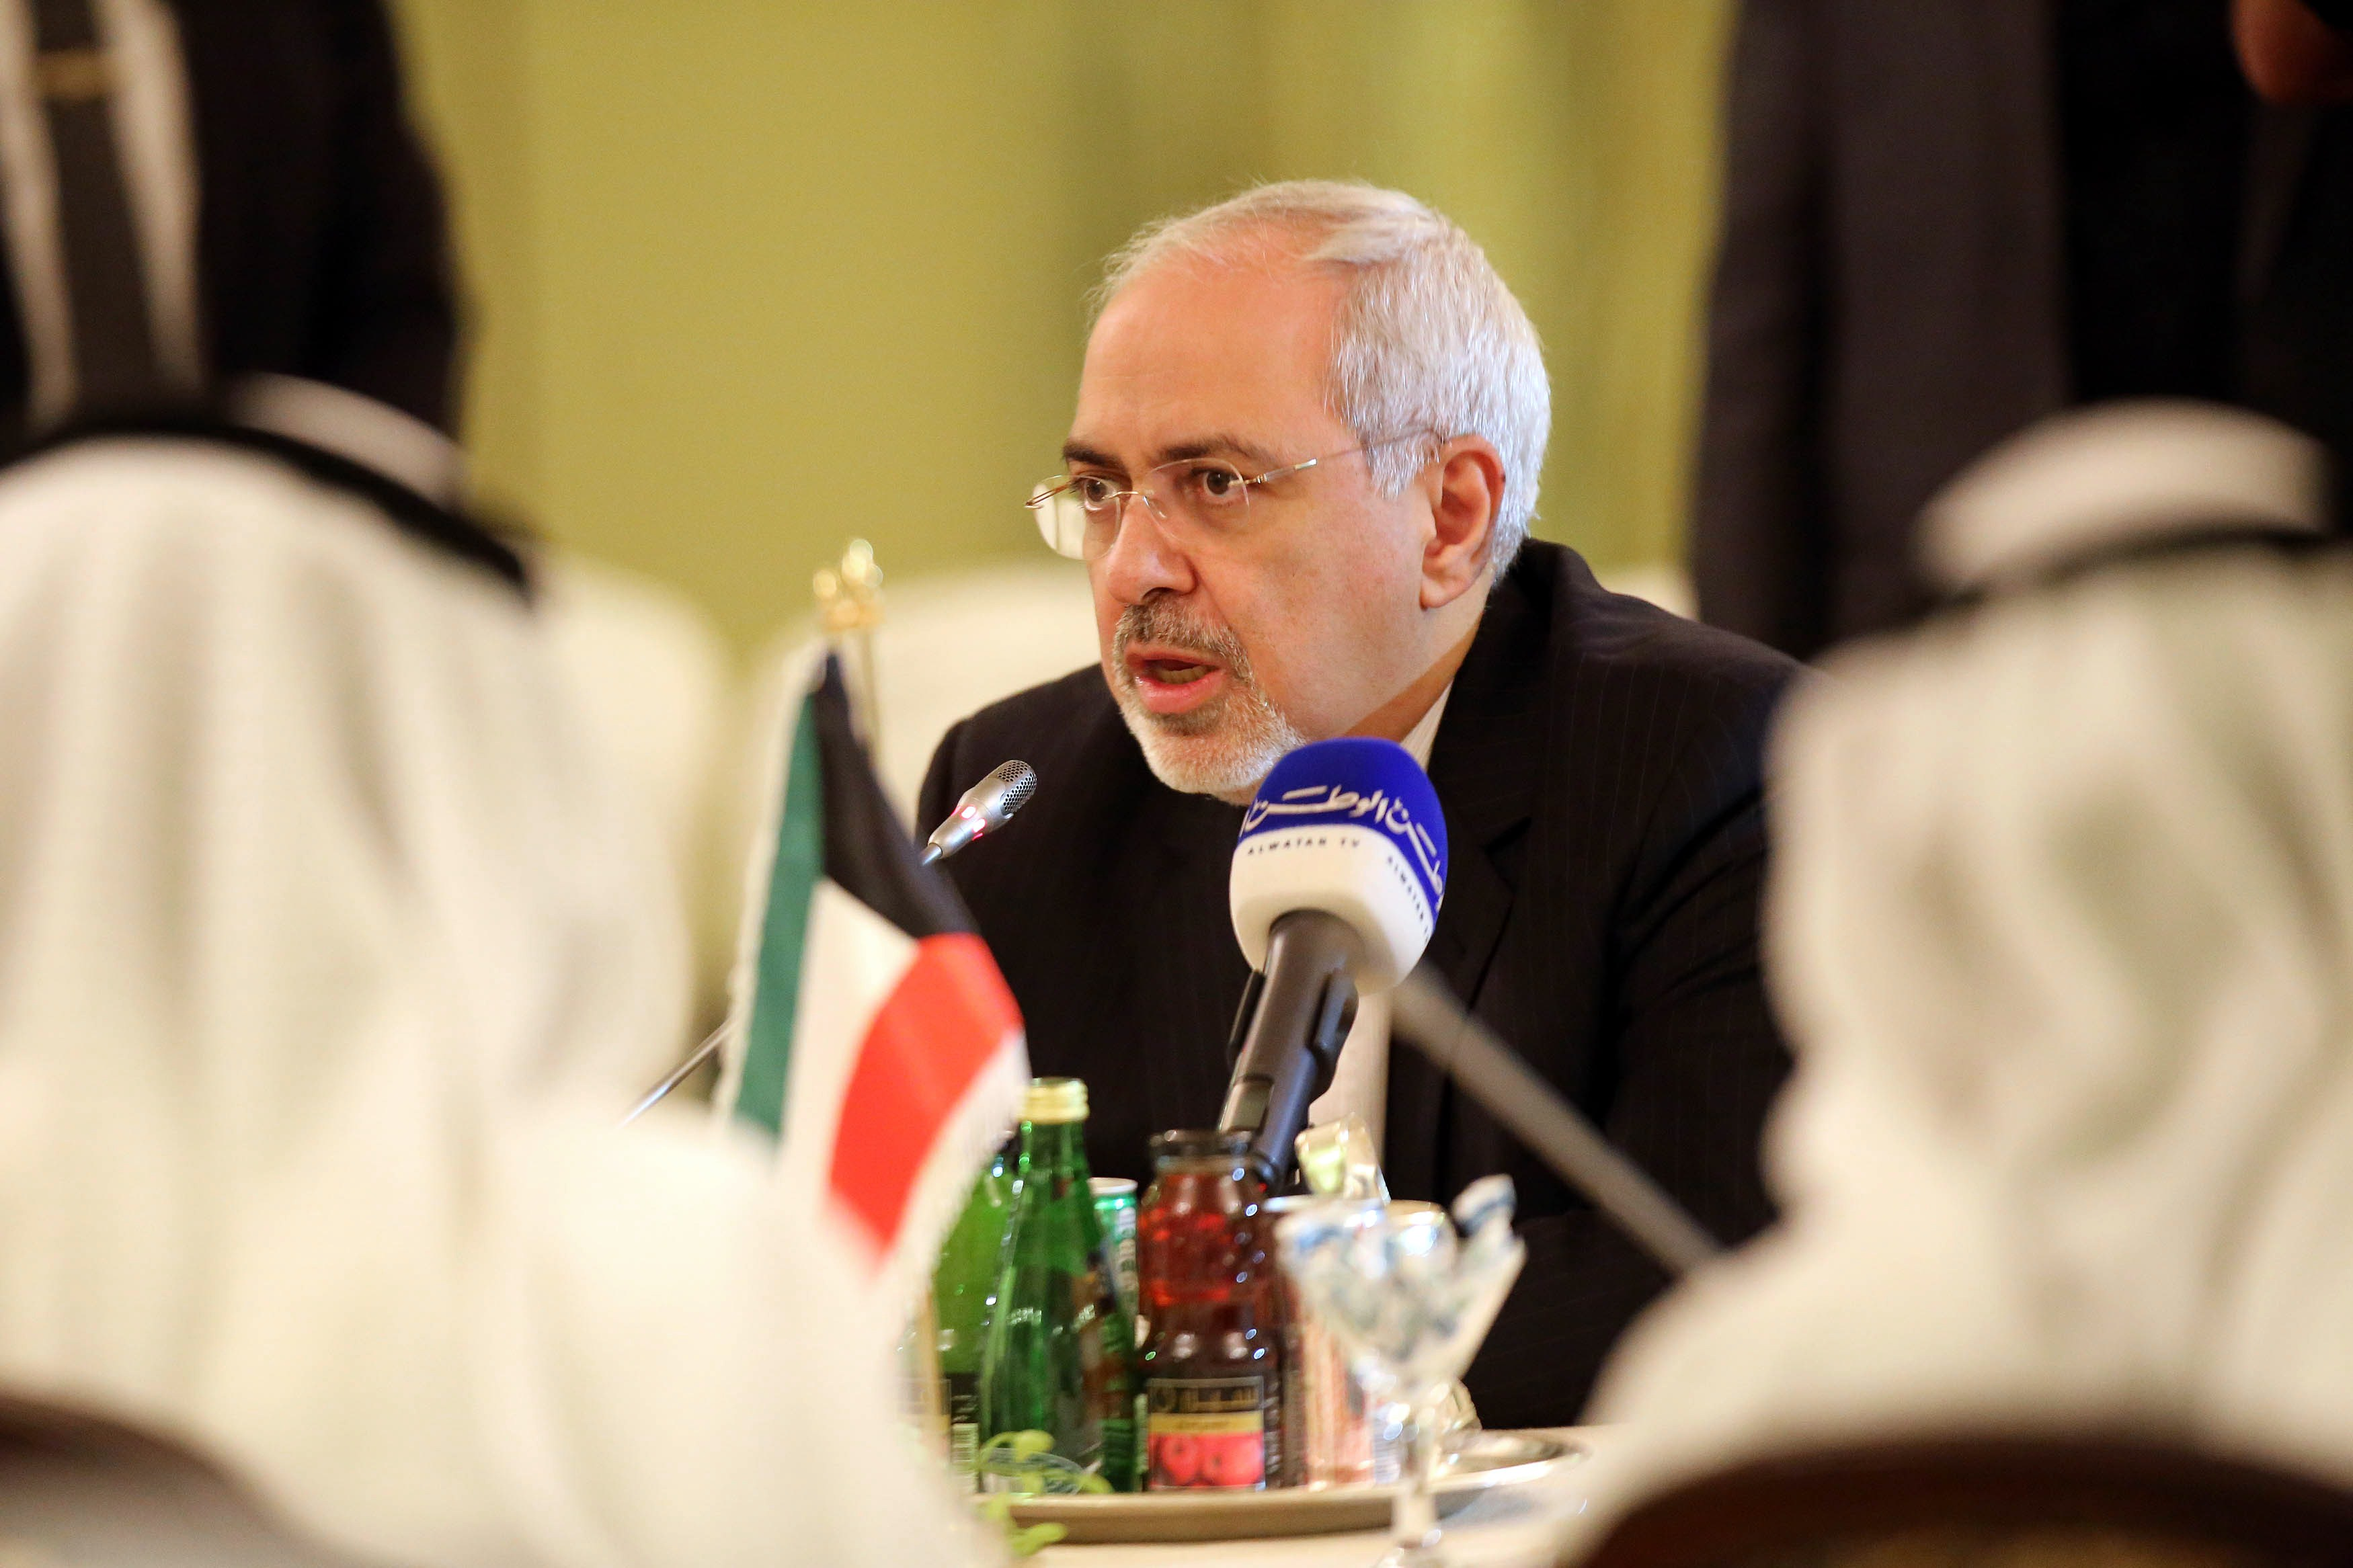 Iranian Foreign Minister Mohammad Javad Zarif speaks during second joint high committee meeting between Kuwait and Iran at the foreign ministry in Kuwait city on Sunday (AFP PHOTO/YASSER AL-ZAYYAT)